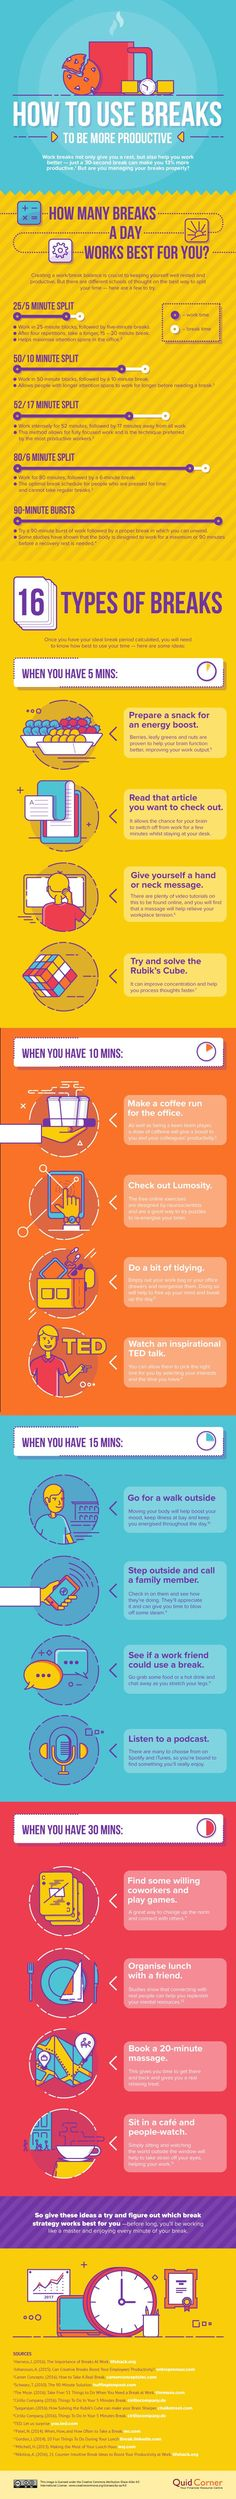 How to Use Breaks to be a More Productive #Entrepreneur #Infographic #Startup